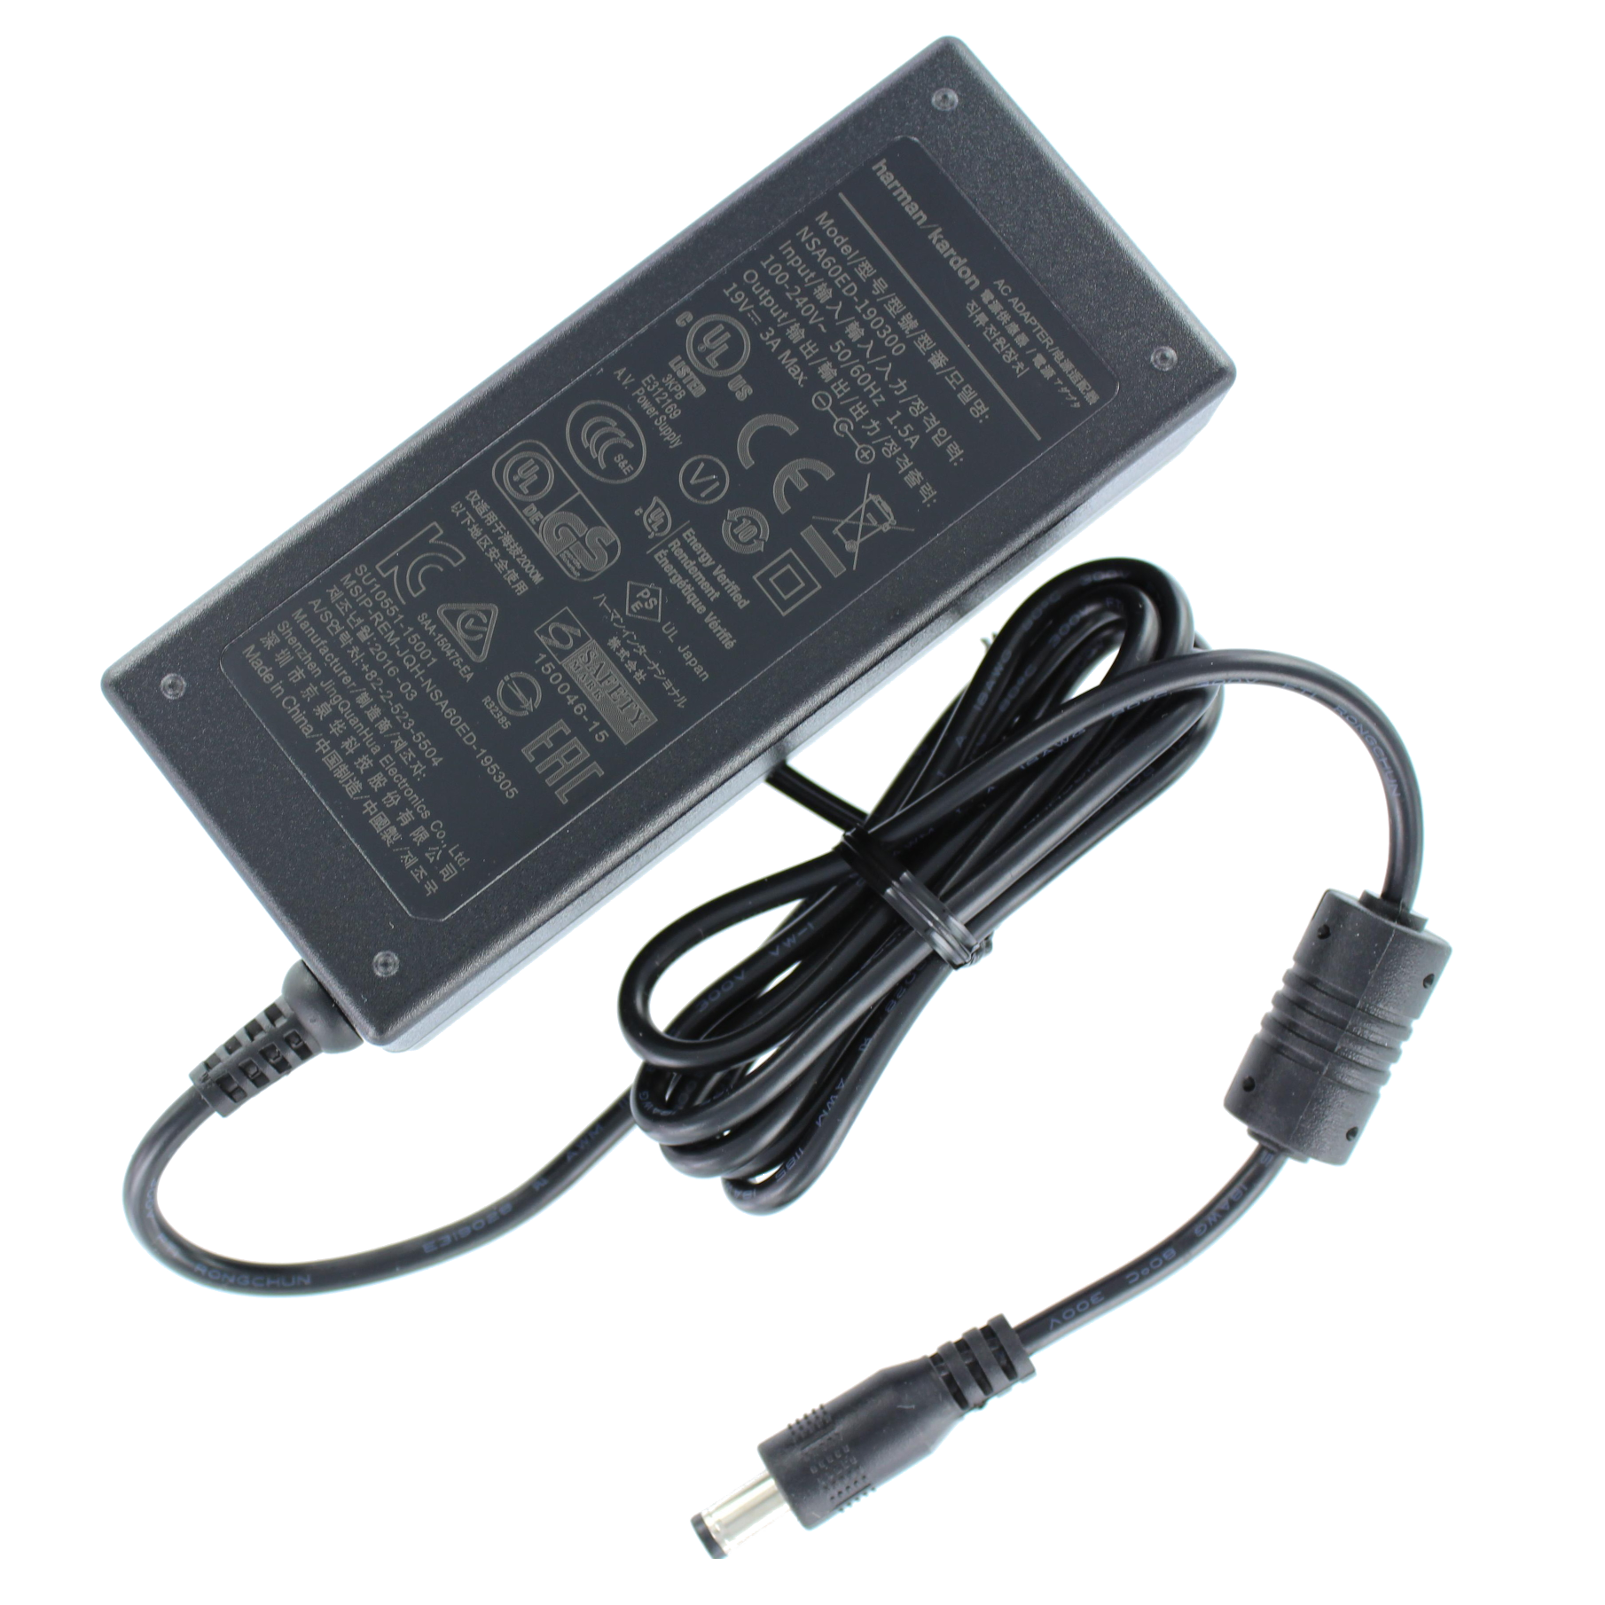 Power adapter, GoPlay mini